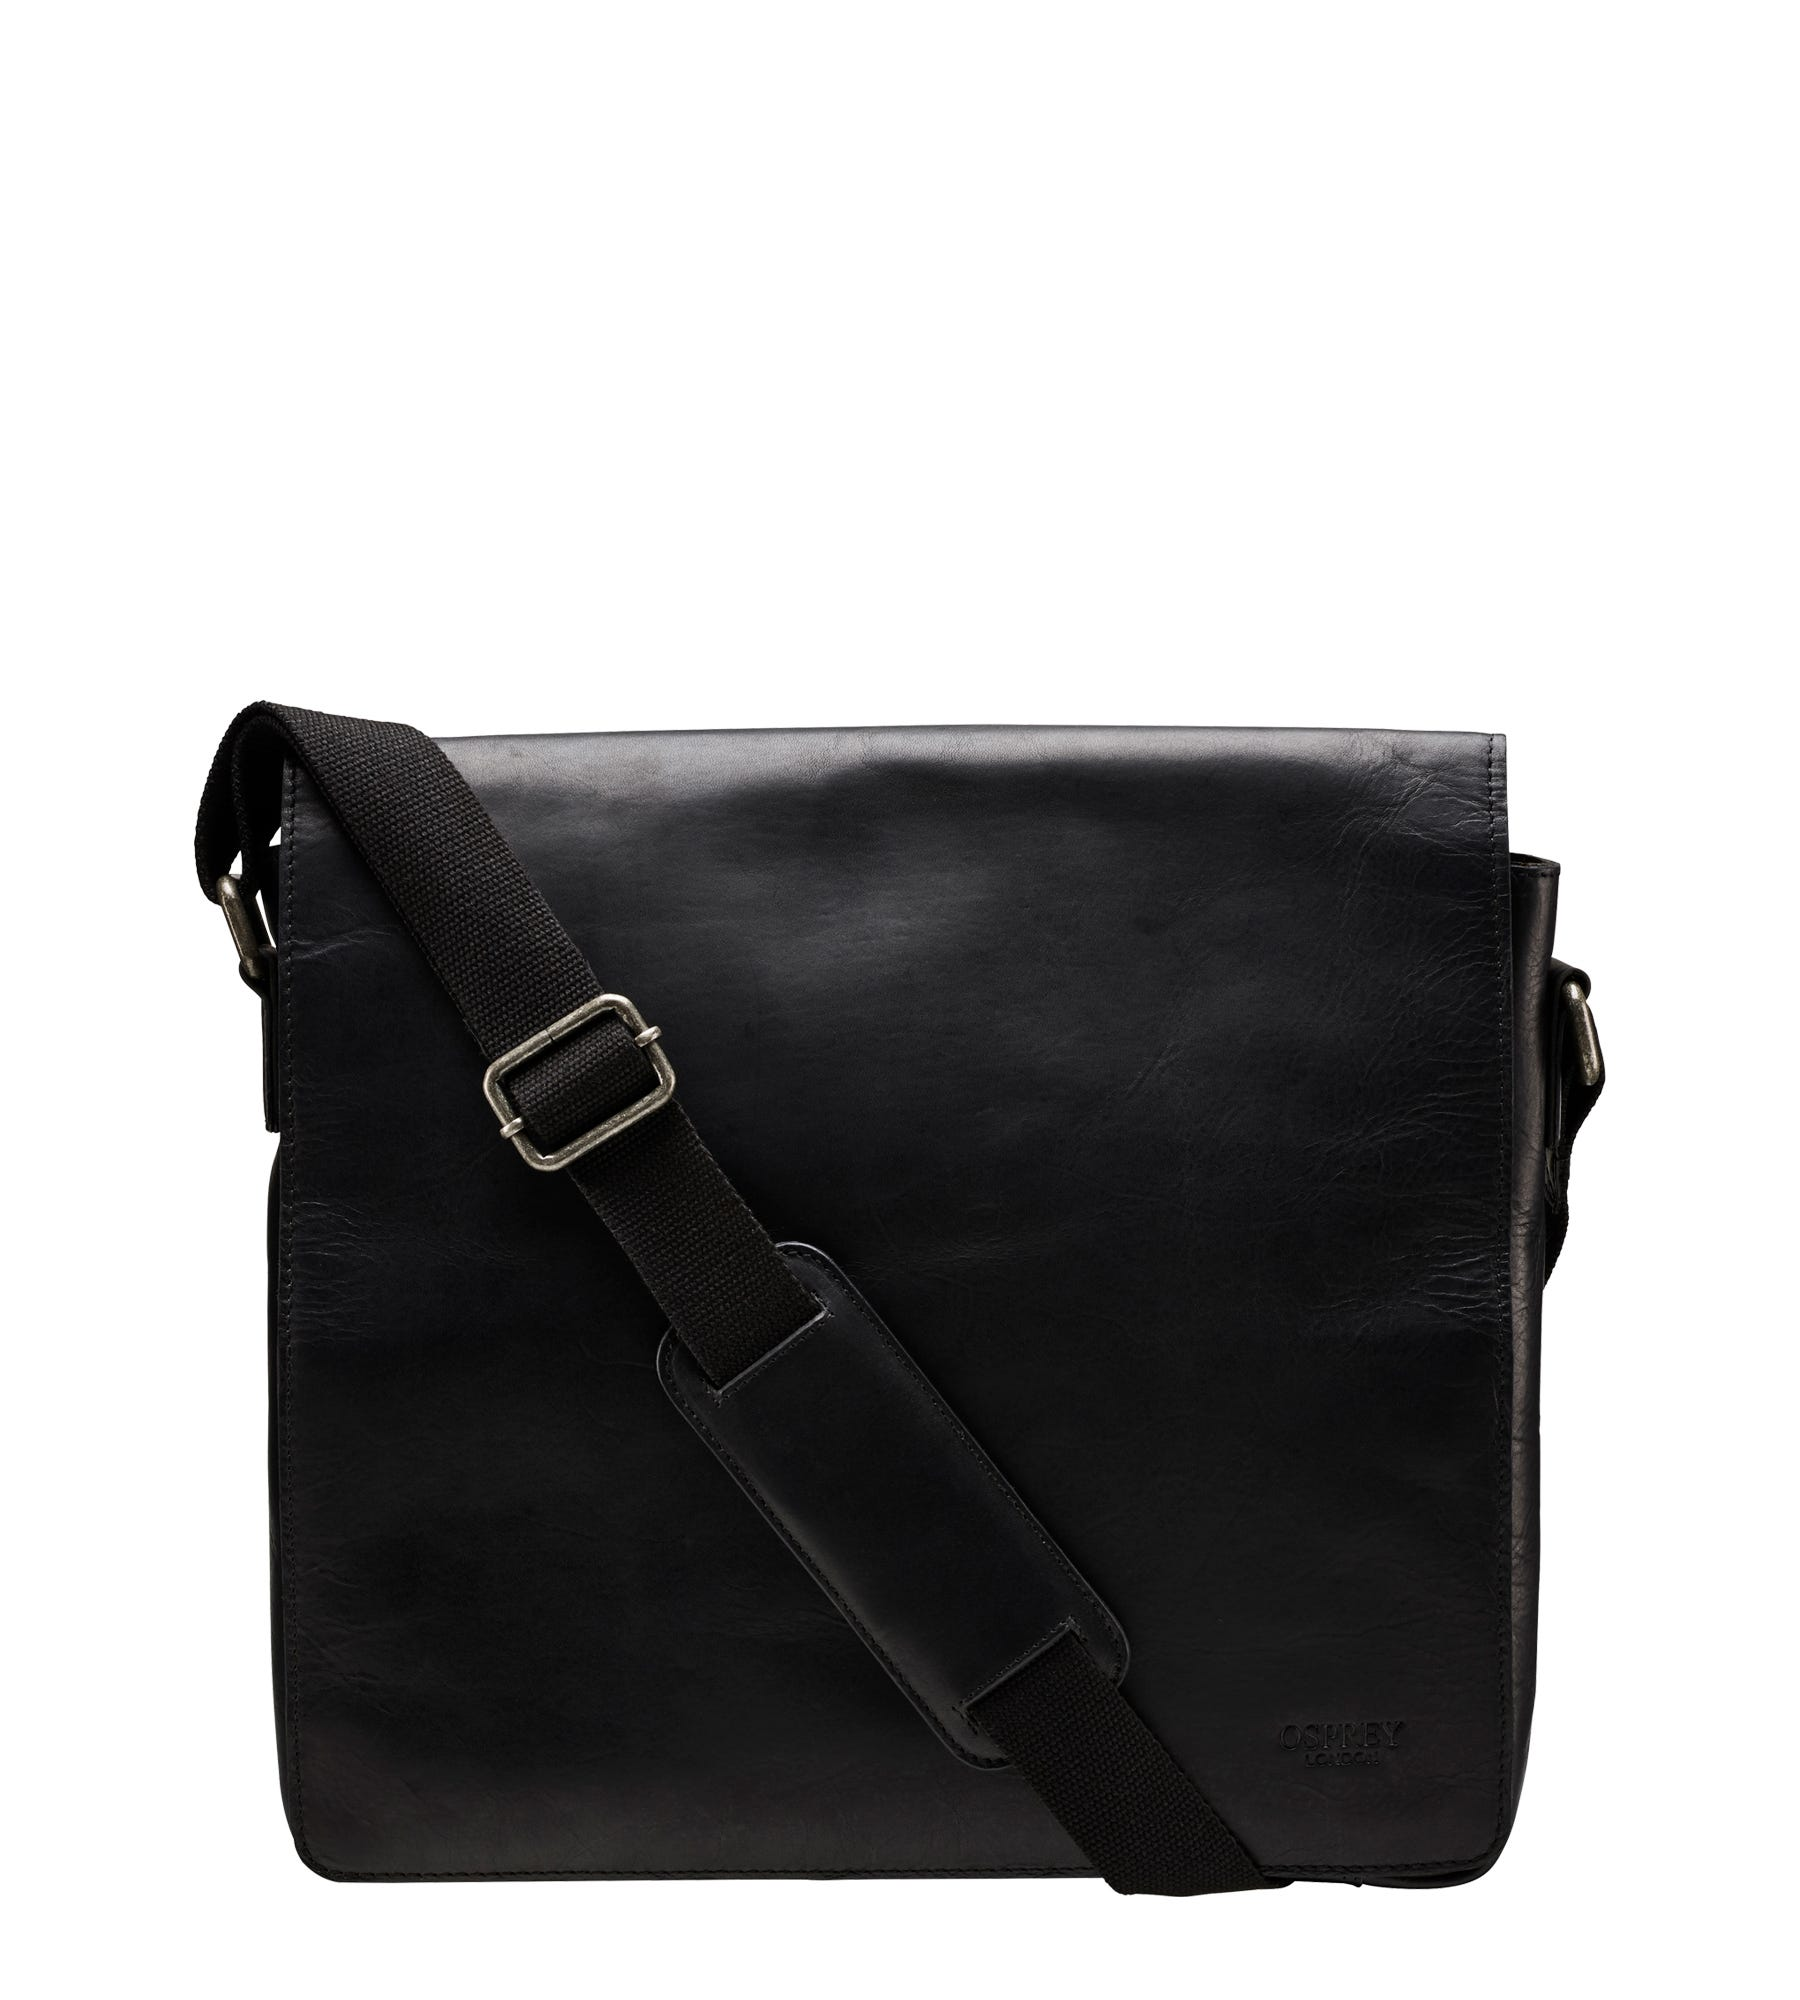 An image of The Large Smithy Leather Messenger